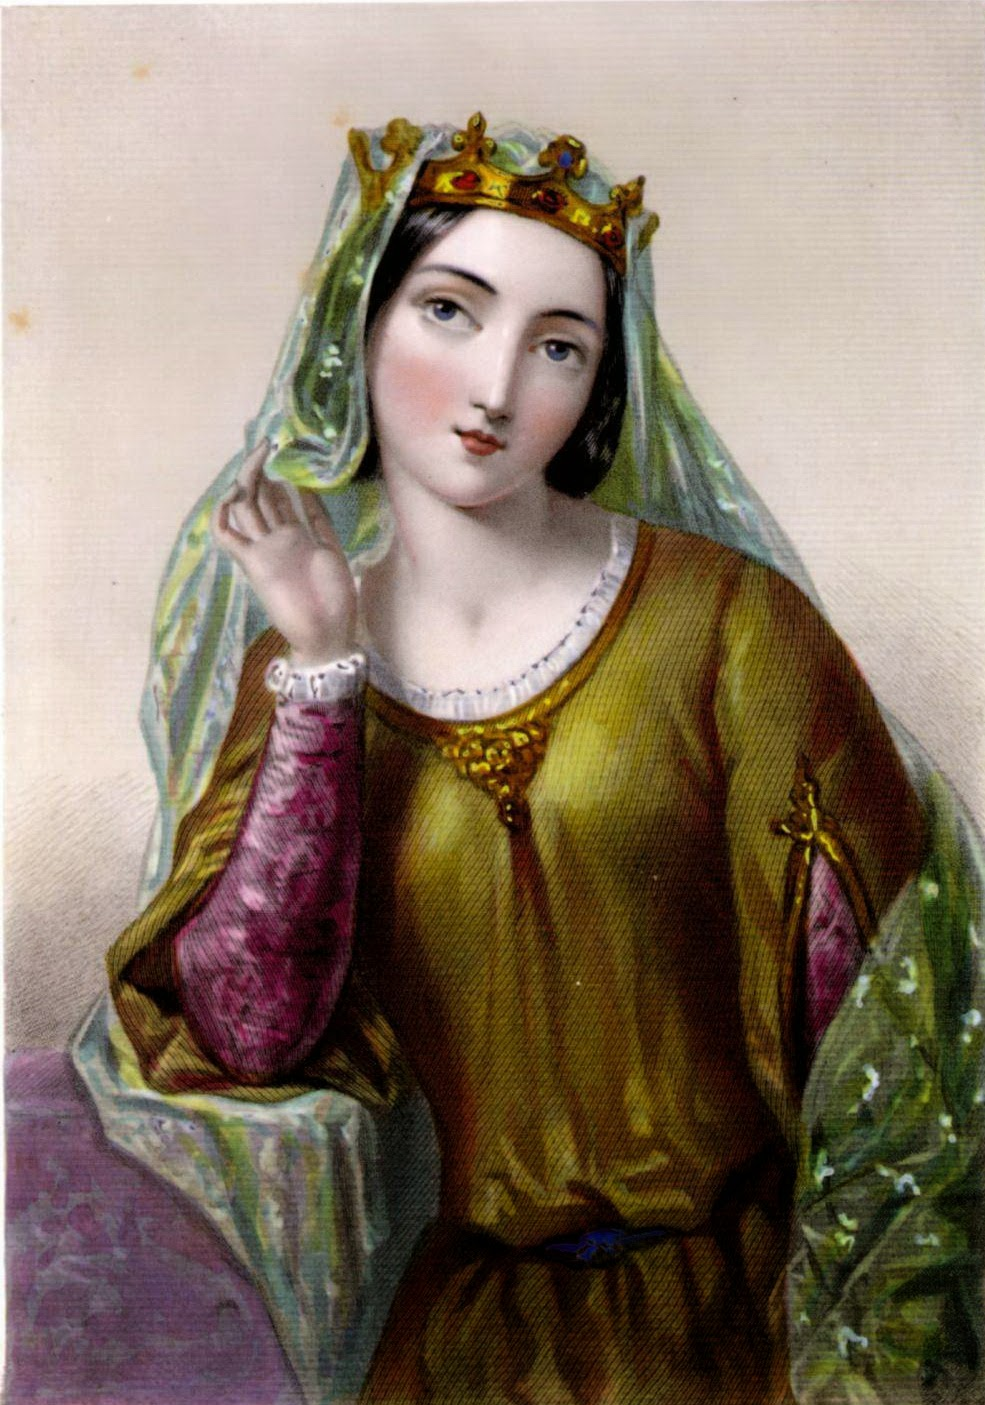 an essay on the life of queen isabella Queen isabella - queen isabella was born in 1451, in the city of castile, spain (leon 75) she was the daughter of king john ii and arevalo (maltby par 1.